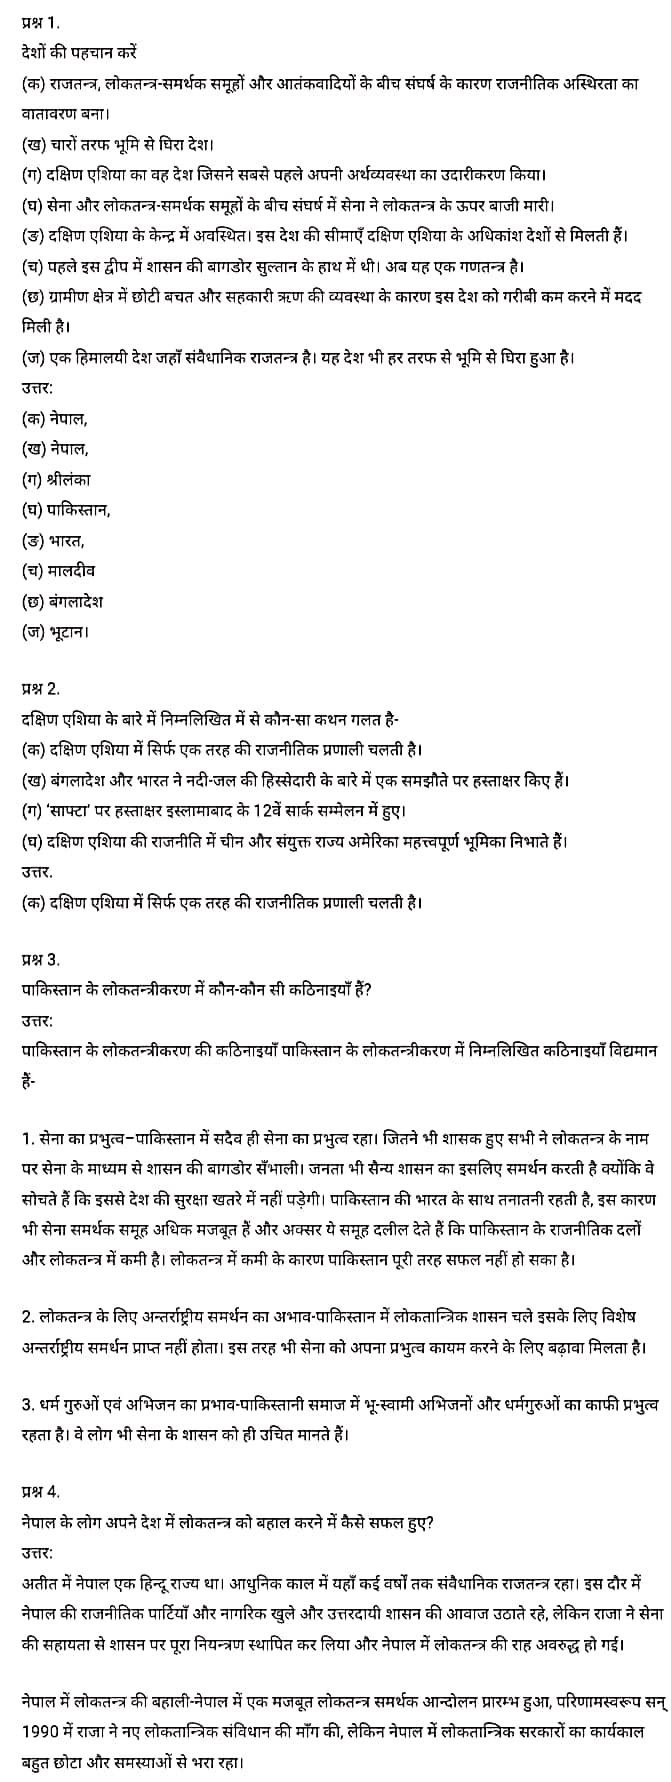 UP Board Solutions for Class 12 Civics Chapter 5 Contemporary South Asia (समकालीन दक्षिण एशिया)